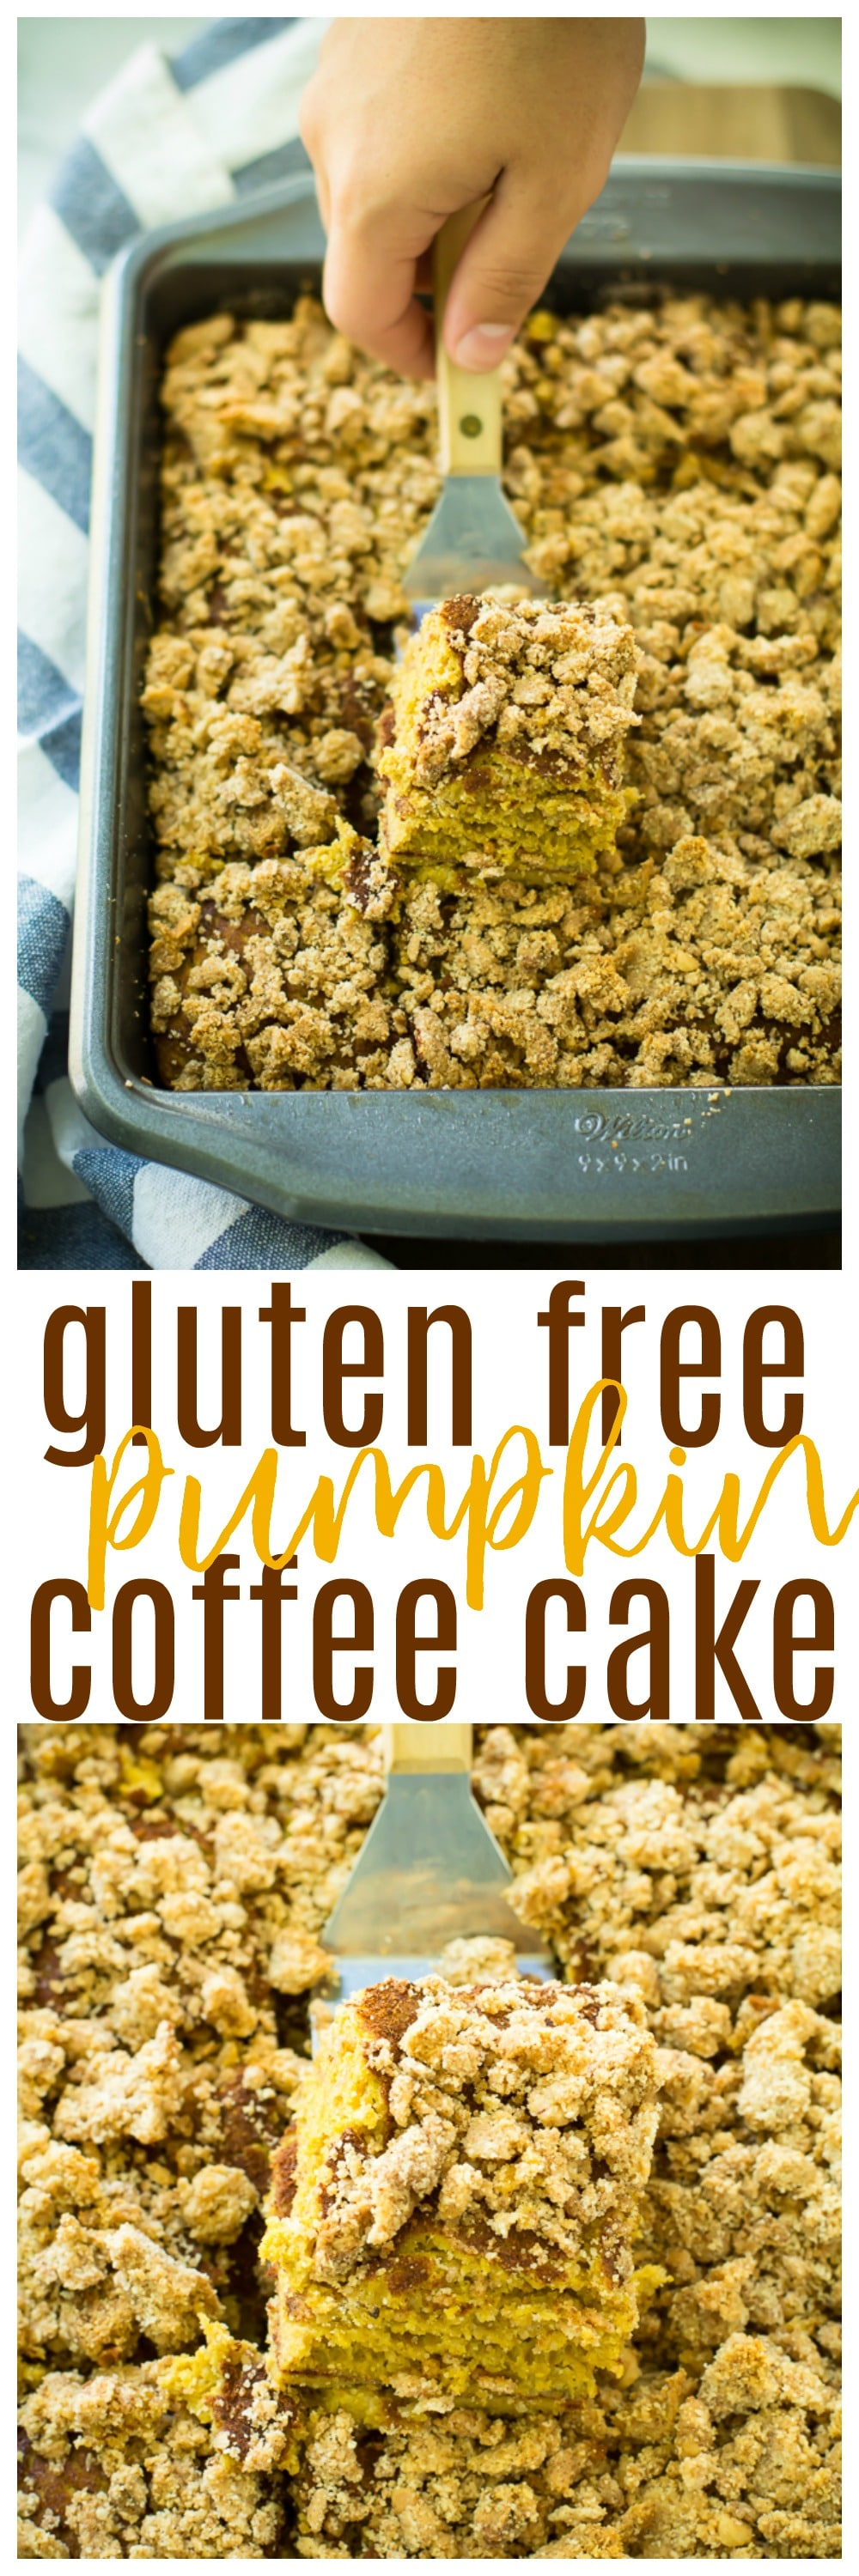 This Gluten Free Pumpkin Coffee Cakeis hearty, easy to make, and infused with delicious pumpkin flavors. It's perfect for holiday gatherings and cozy afternoons alongside coffee or tea.